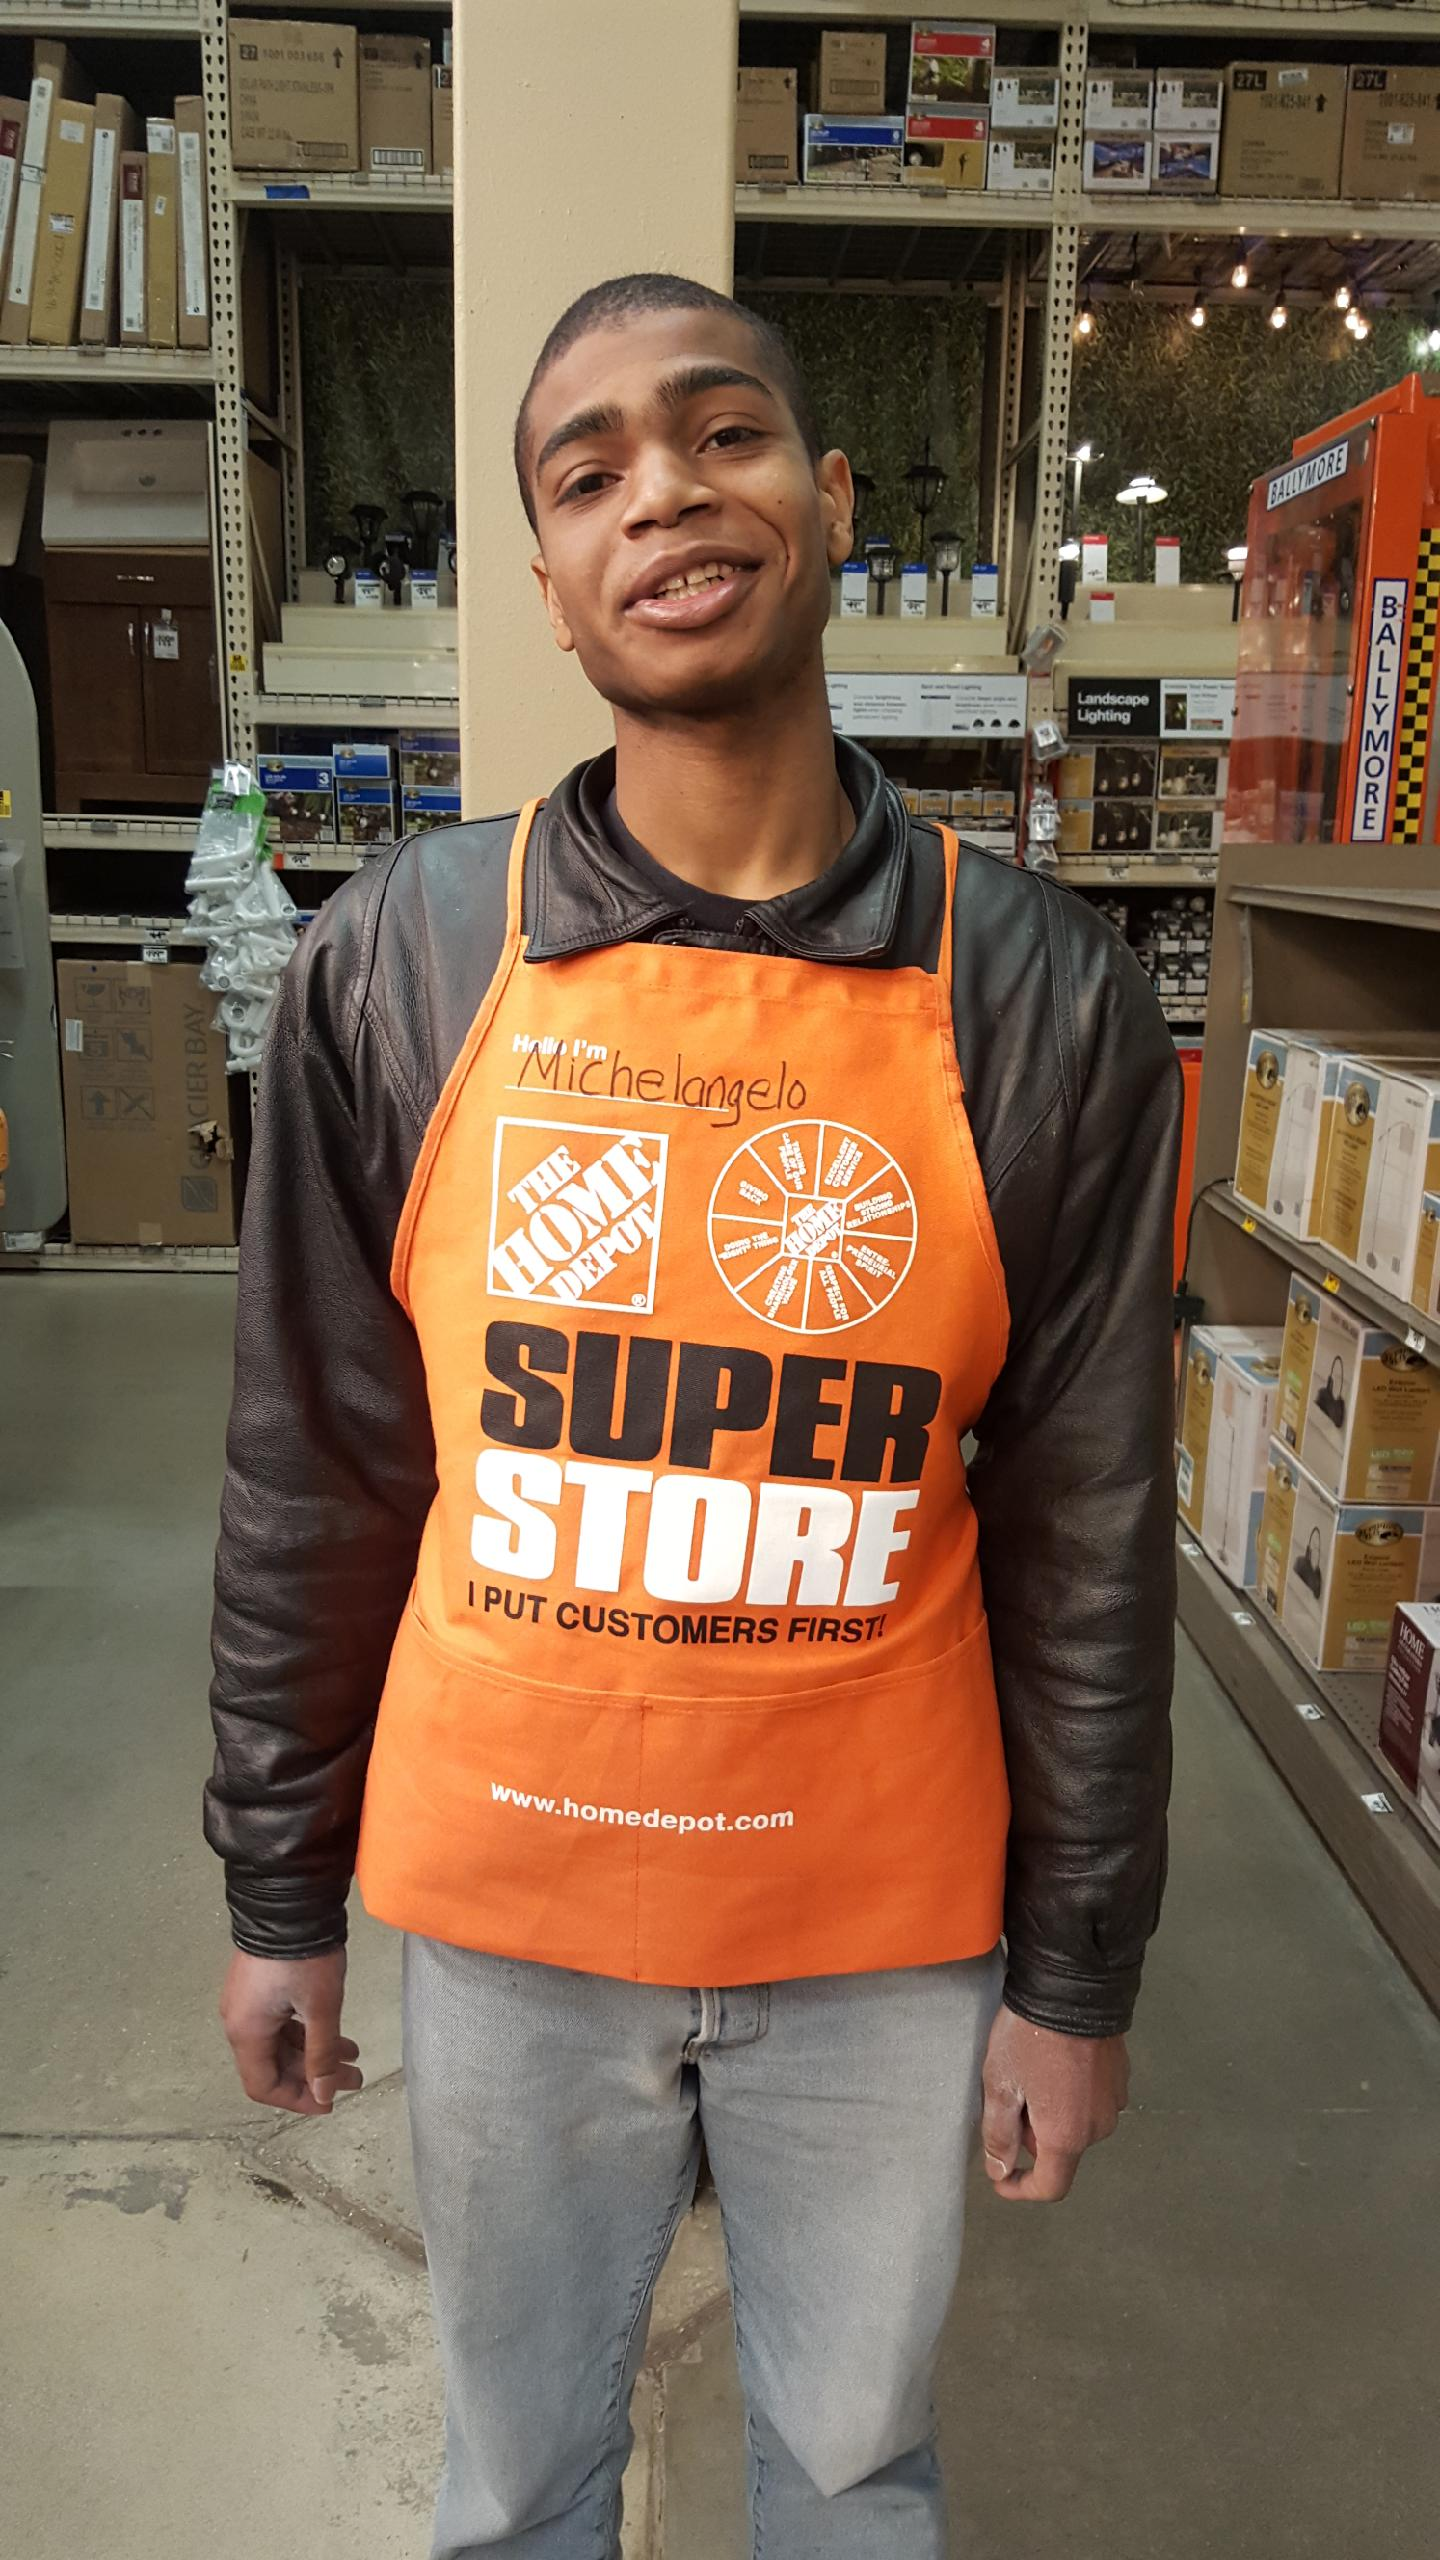 Michelangelo L. - Our newest Employment Success Story comes from Michelangelo L. who recently graduated from Inroad's Cleaning Management Certificate Program. Michelangelo is eager to work and was employed by The Home Depot. We are very proud of him!